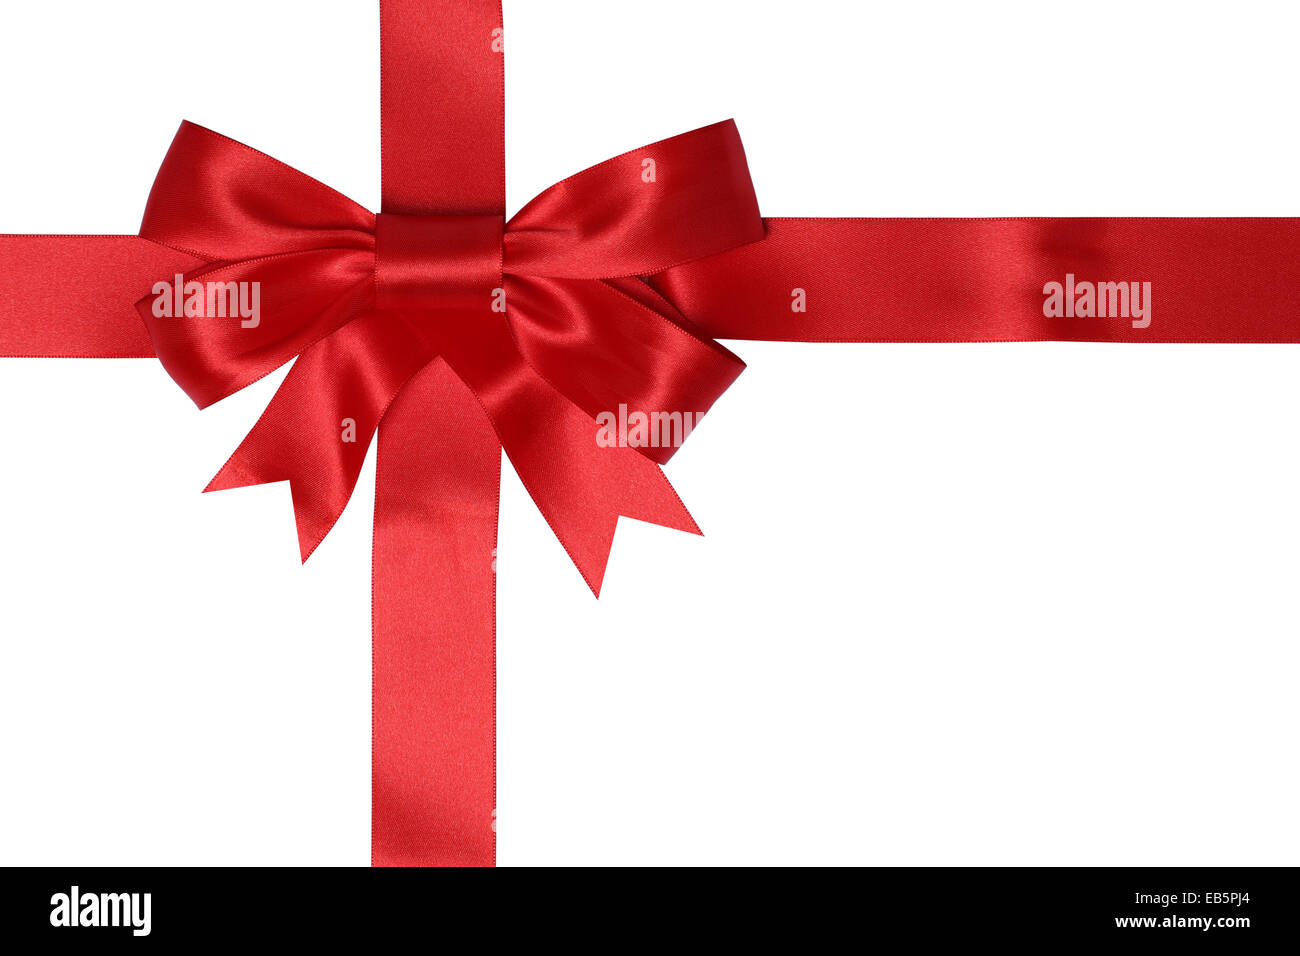 Gift card with red ribbon for gifts on Christmas or birthday ...